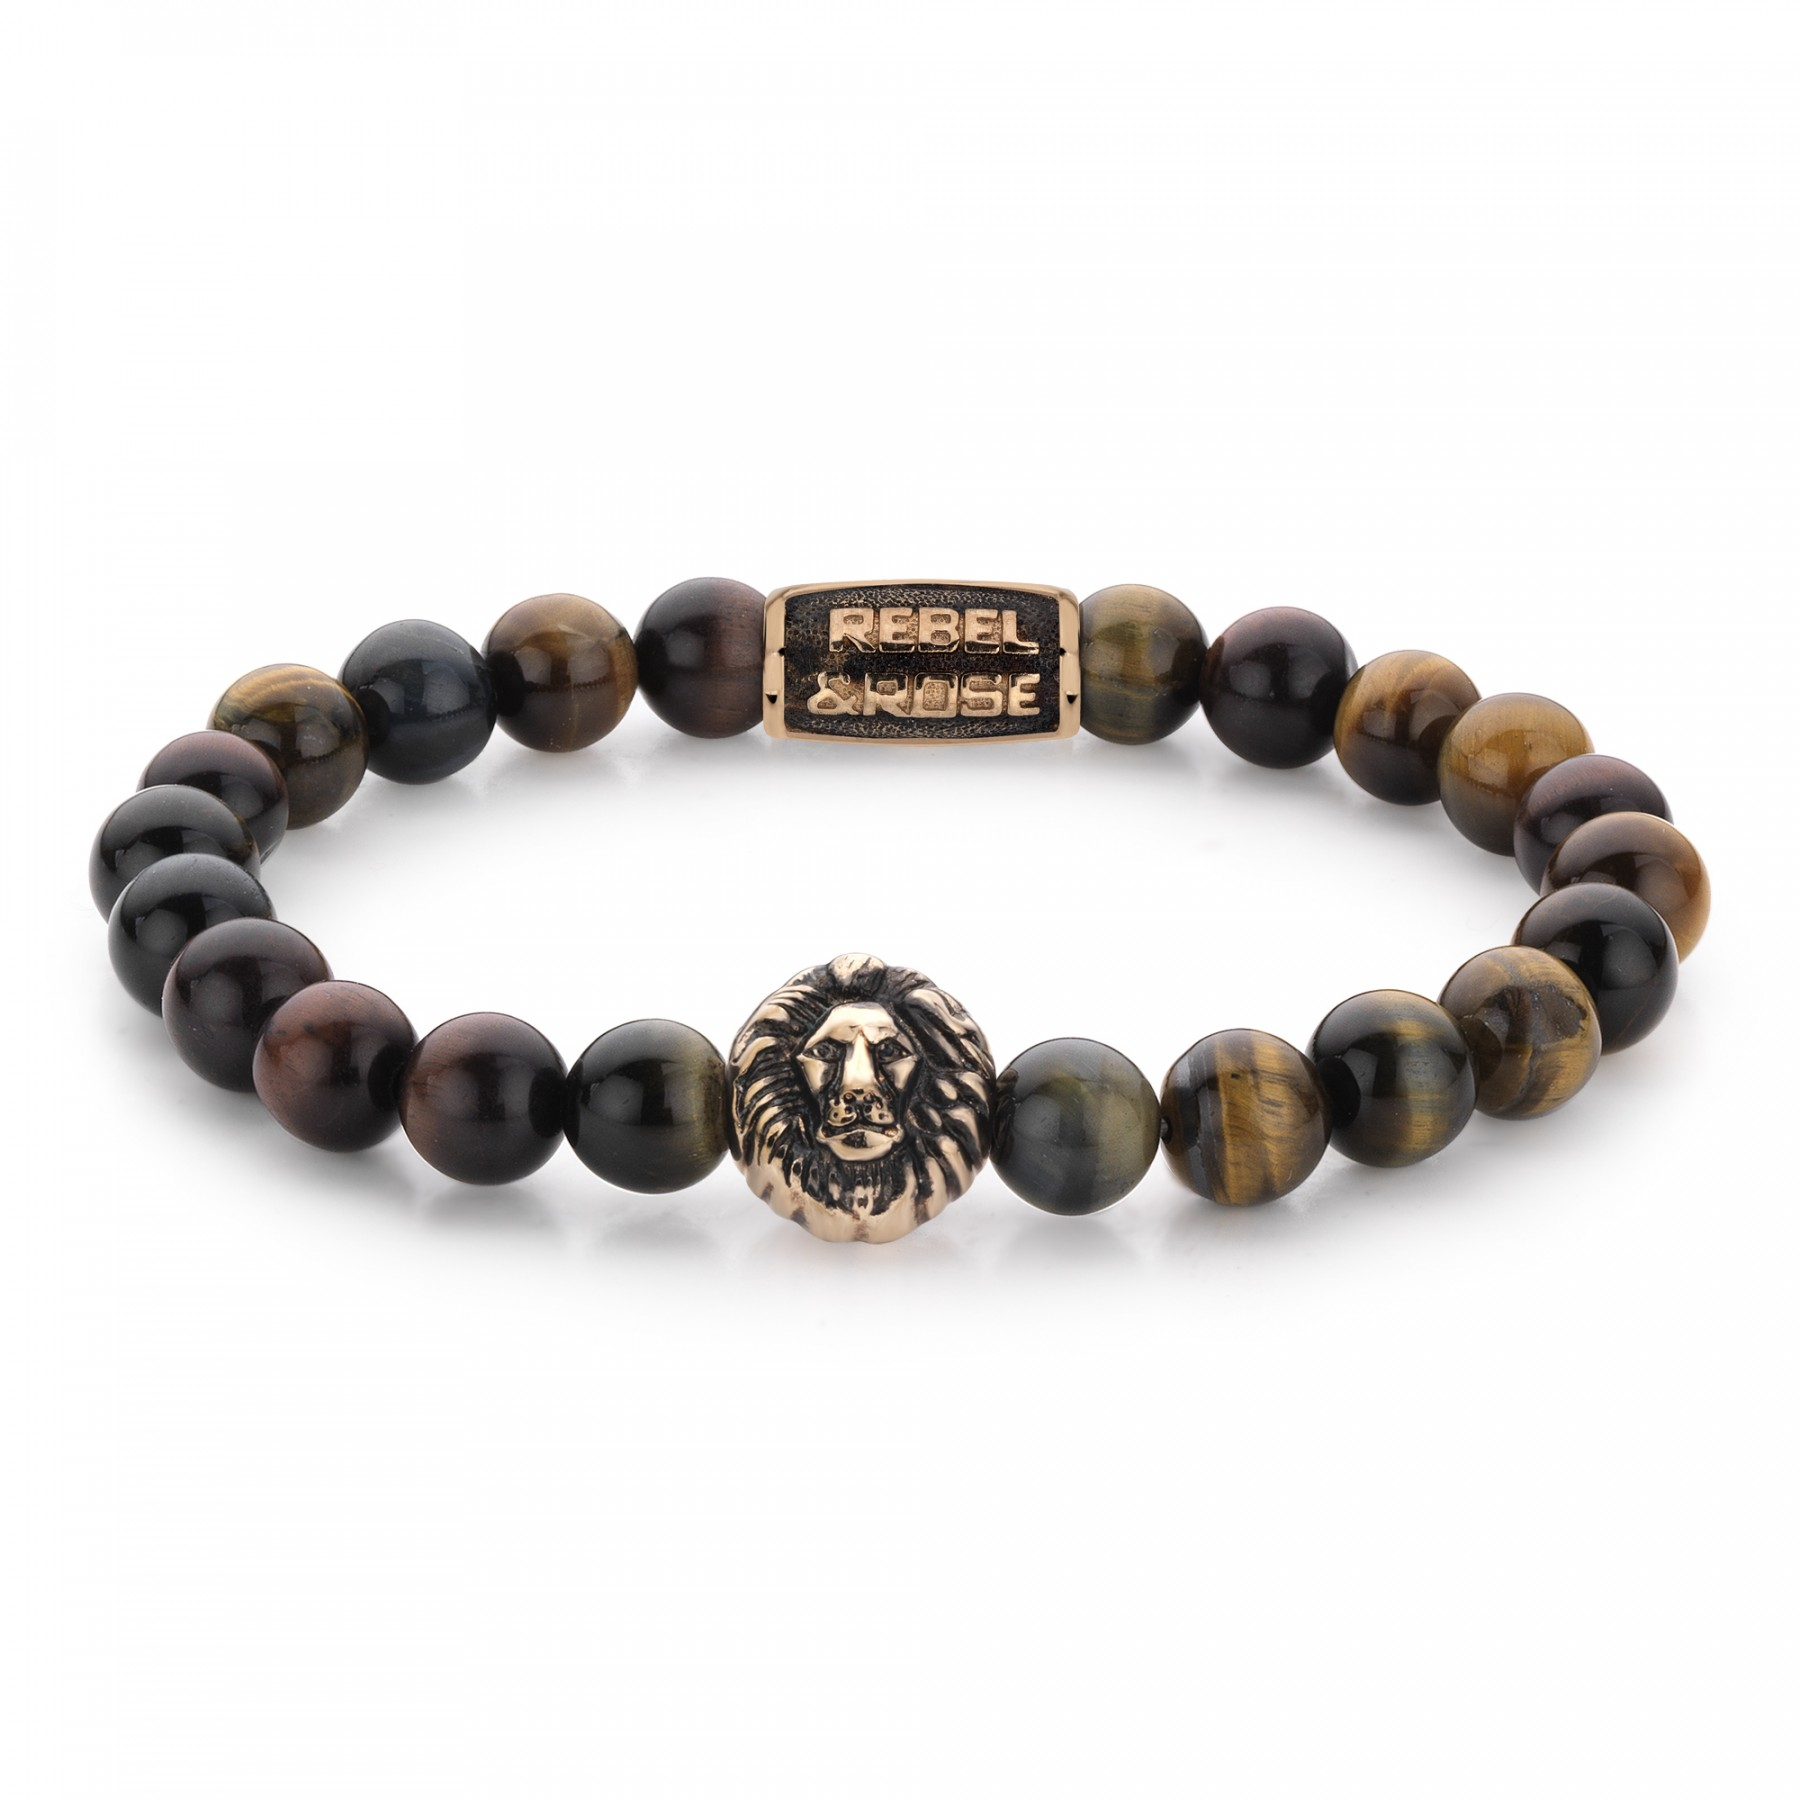 Rebel and Rose RR-8L032-R-M Armband Who's afraid of the Lion - rose gold plated M 8mm 17.5